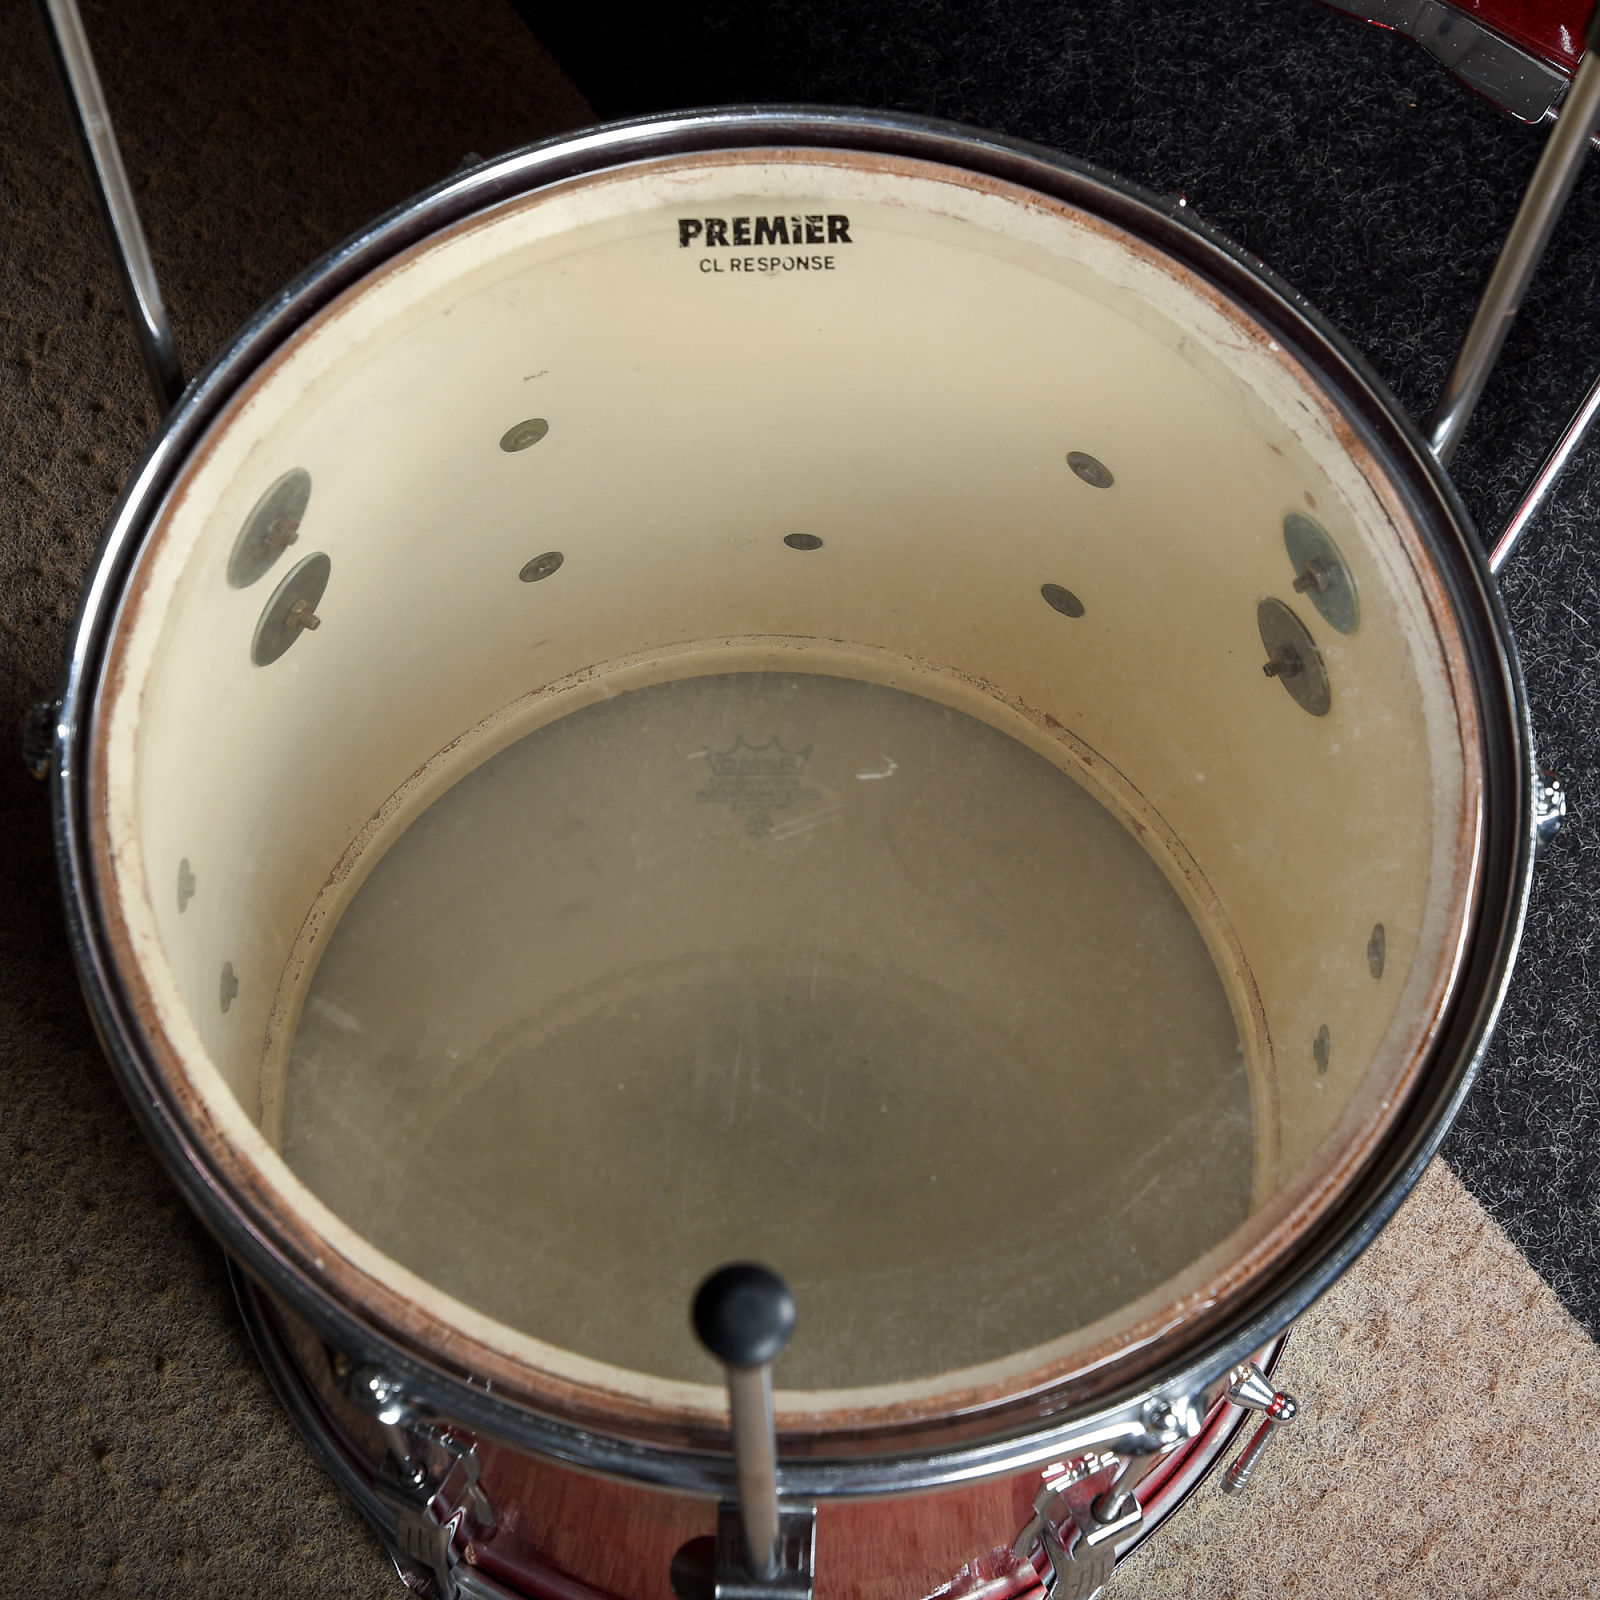 How to Date Premier Drums – Often, these types of publications are subject specific such as vintage drums and have pictures and descriptions.